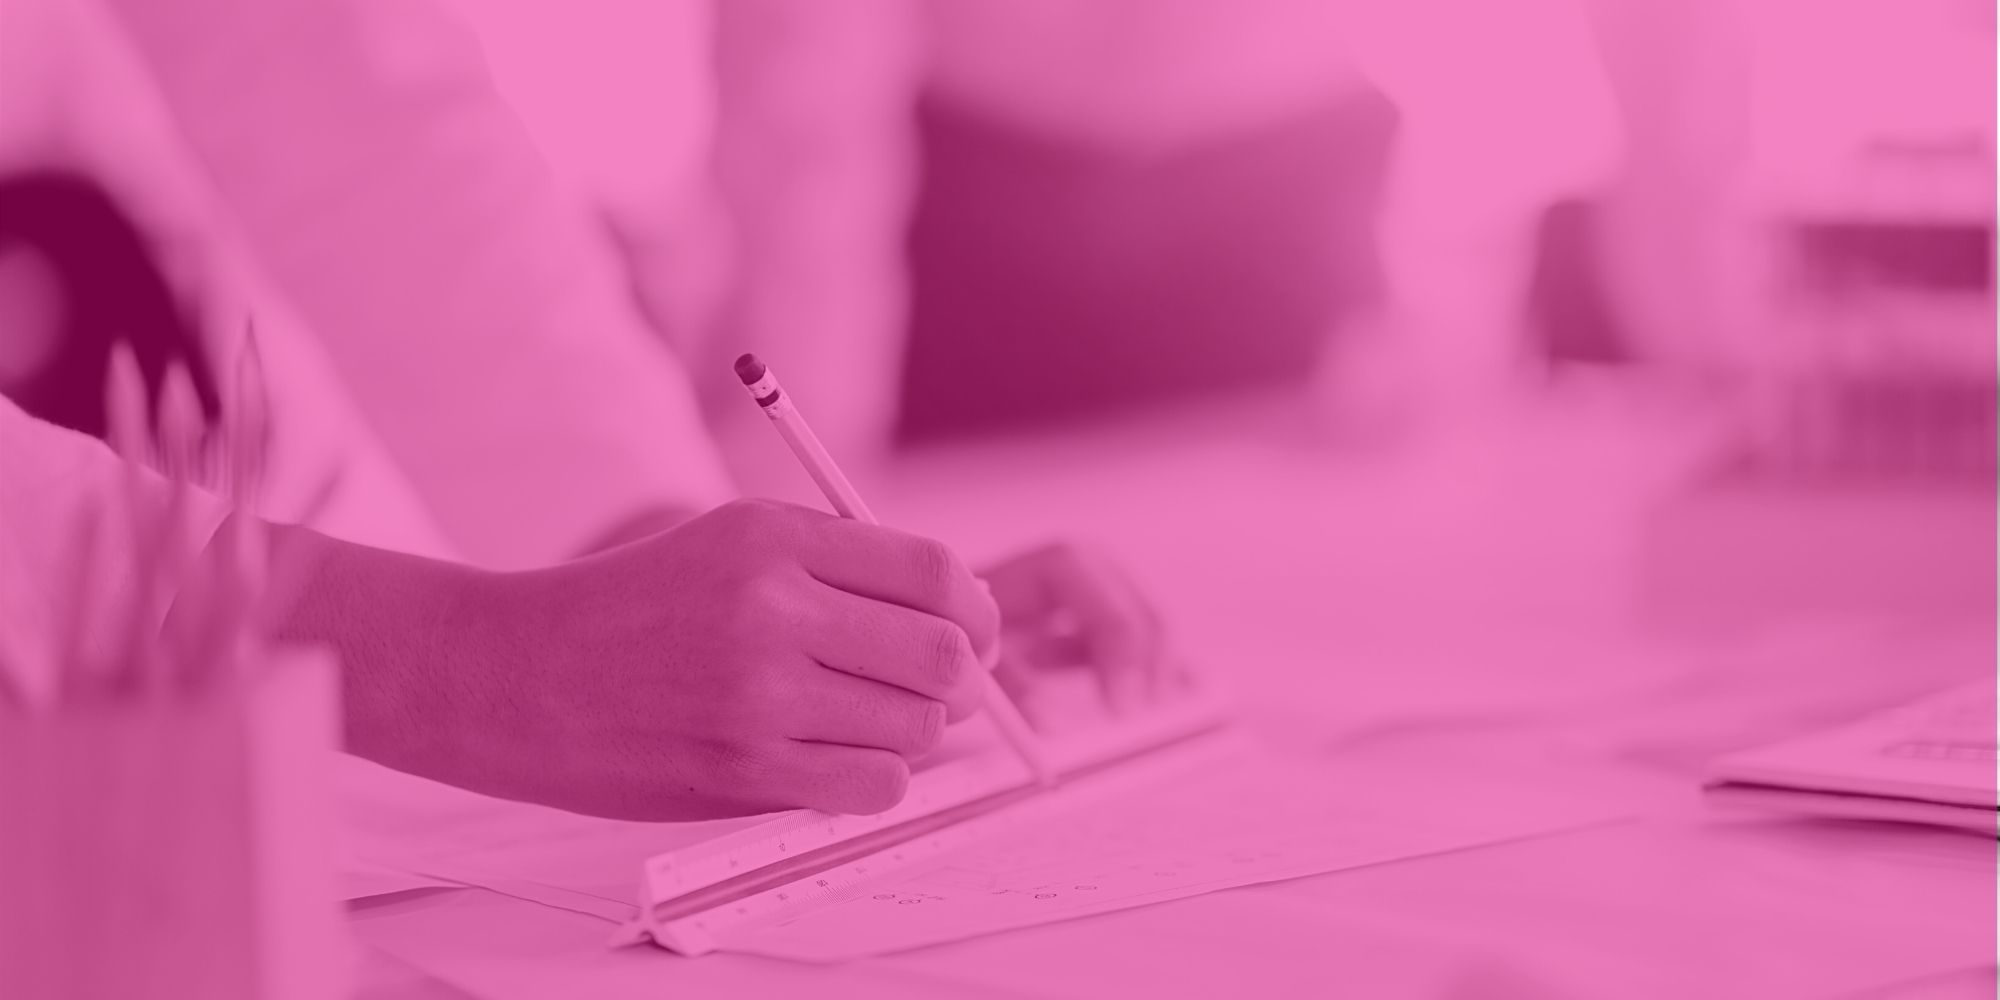 See what our bootcampers do, image of someone white holding a pencil working. Pink overlay